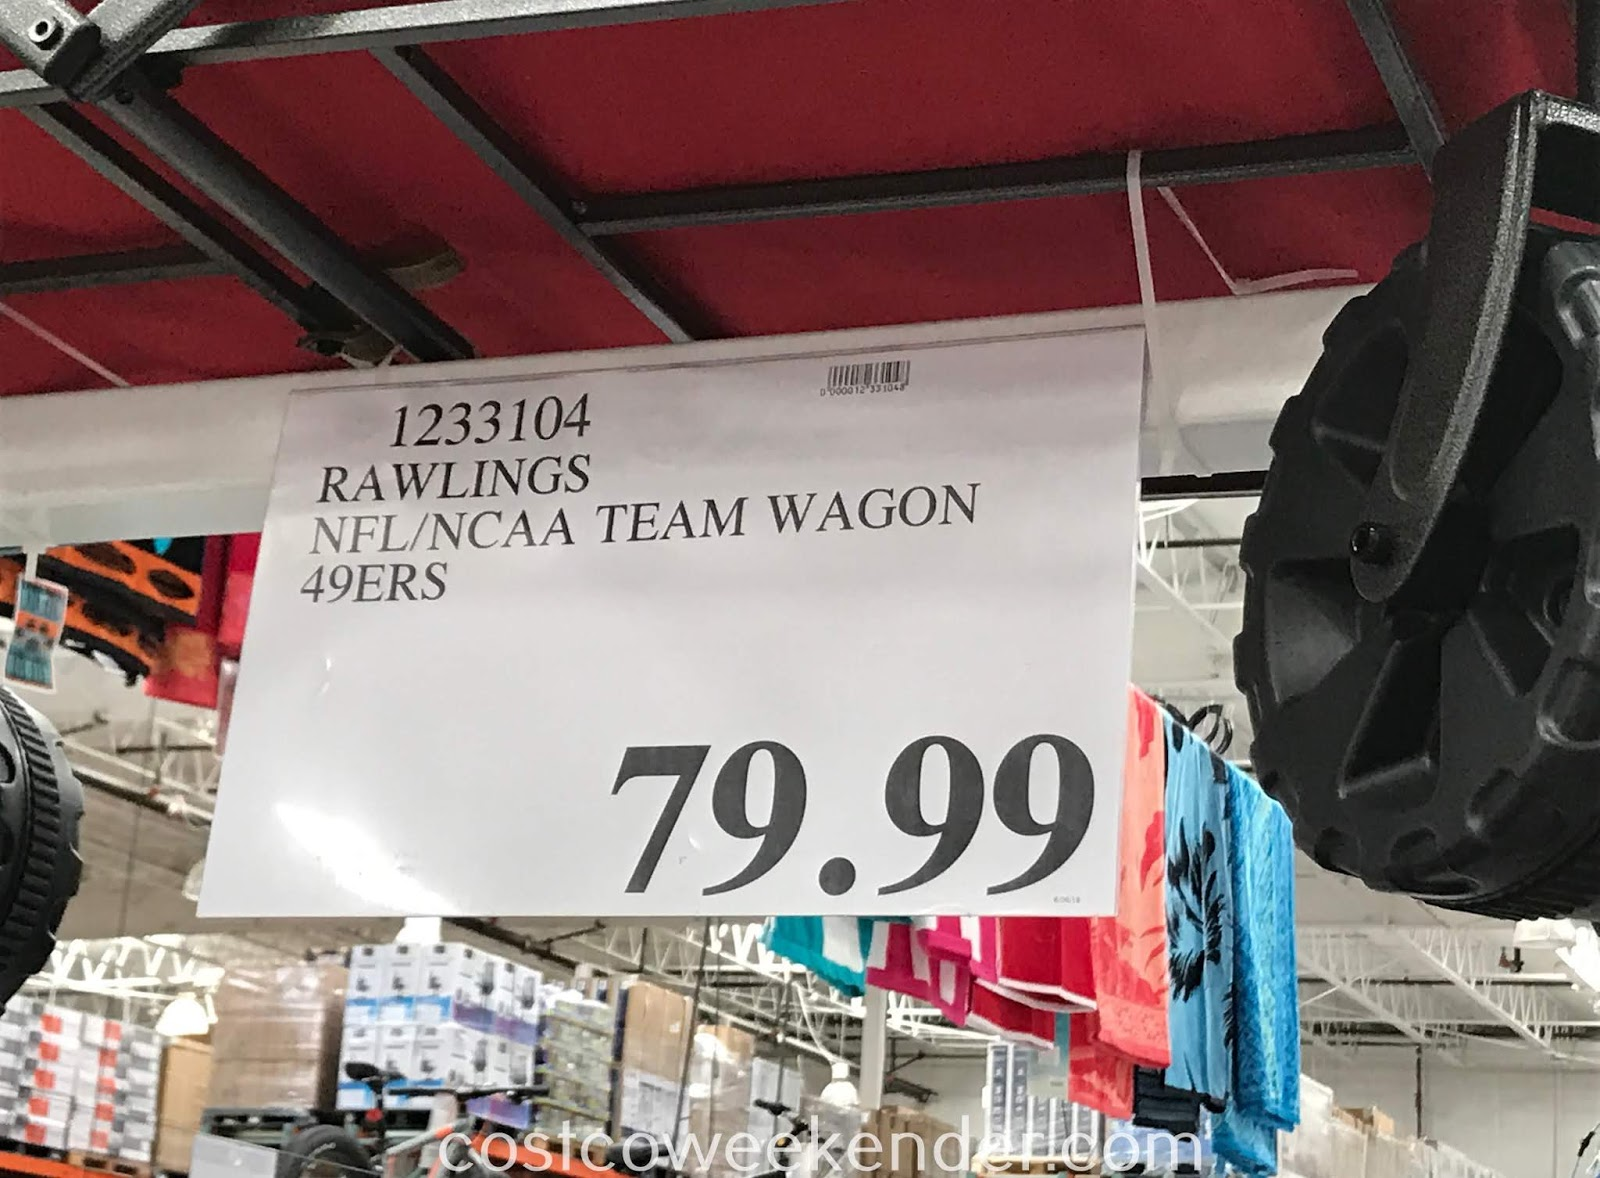 Deal for the Rawlings NFL/NCAA Tailgate Team Wagon at Costco